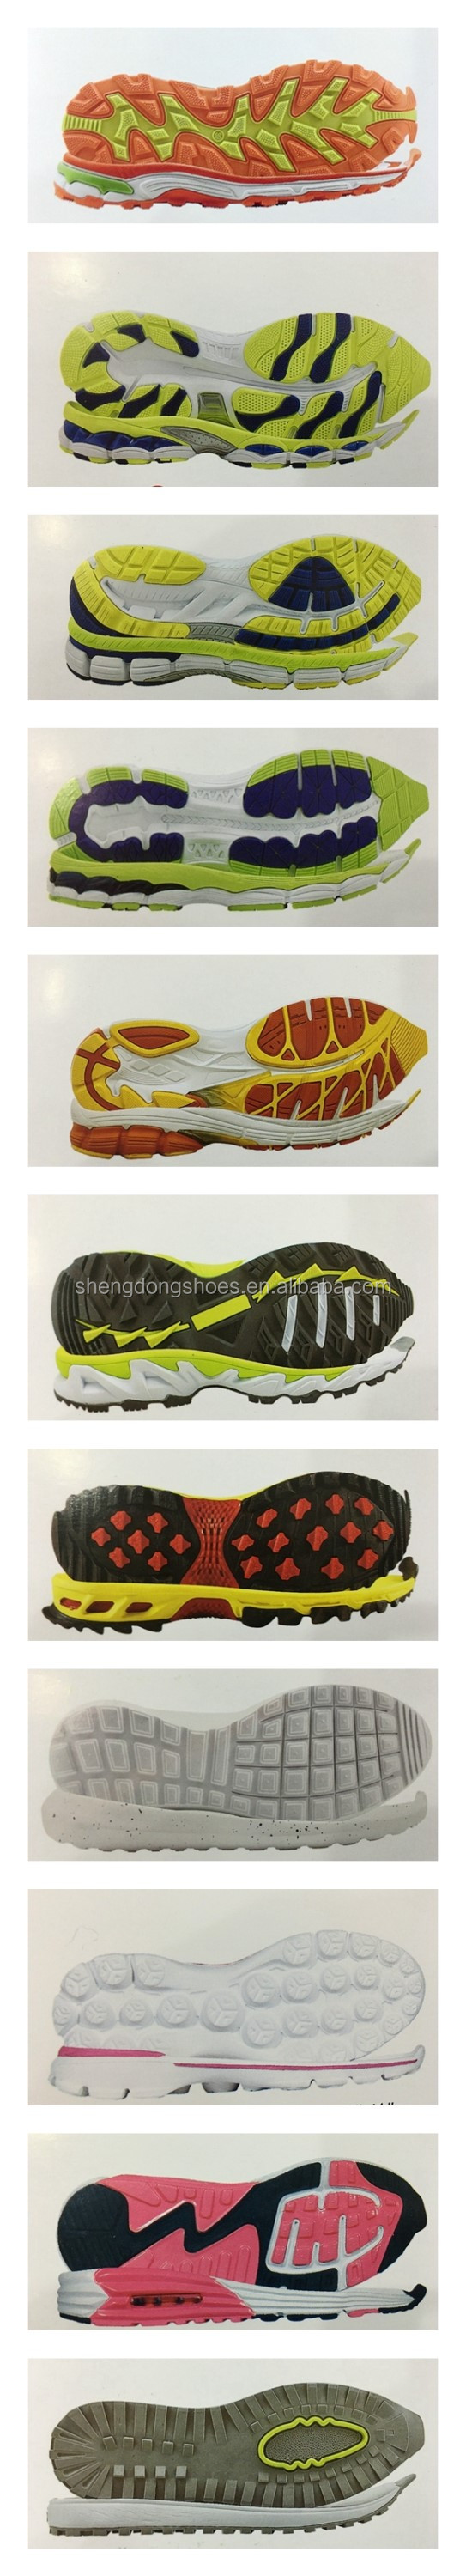 2016 running shoes sole eva shoe sole order free sample shoes